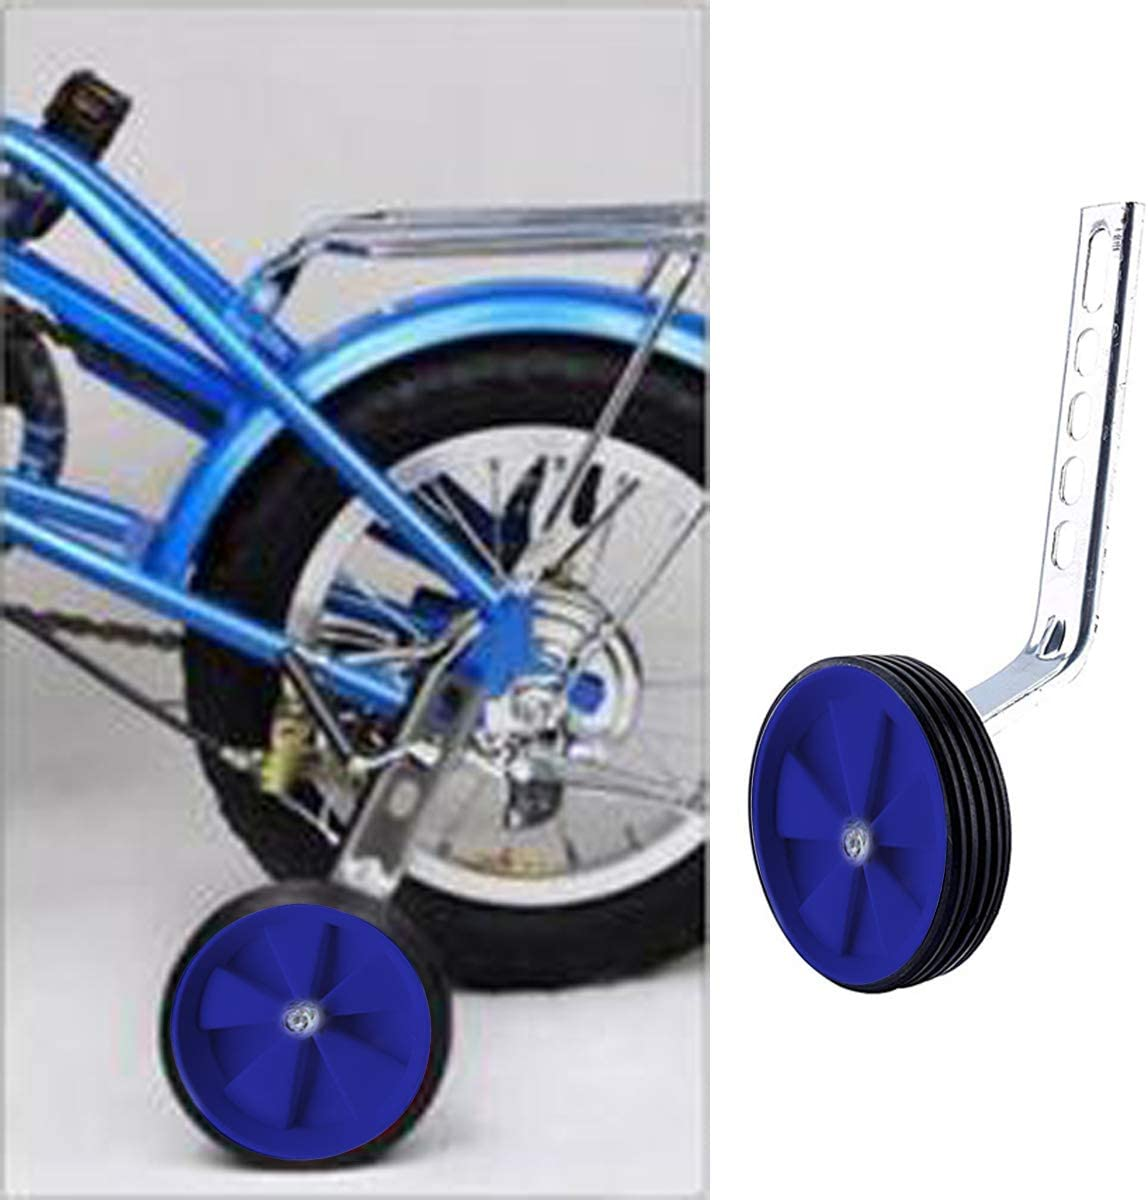 1 Pair Haploon Training Wheels,Bicycle Training Wheels Stronger Version Design,with Reinforced Metal Heavy Duty Rear Wheel for Kids Bikes of 12 14 16 18 20 Inch